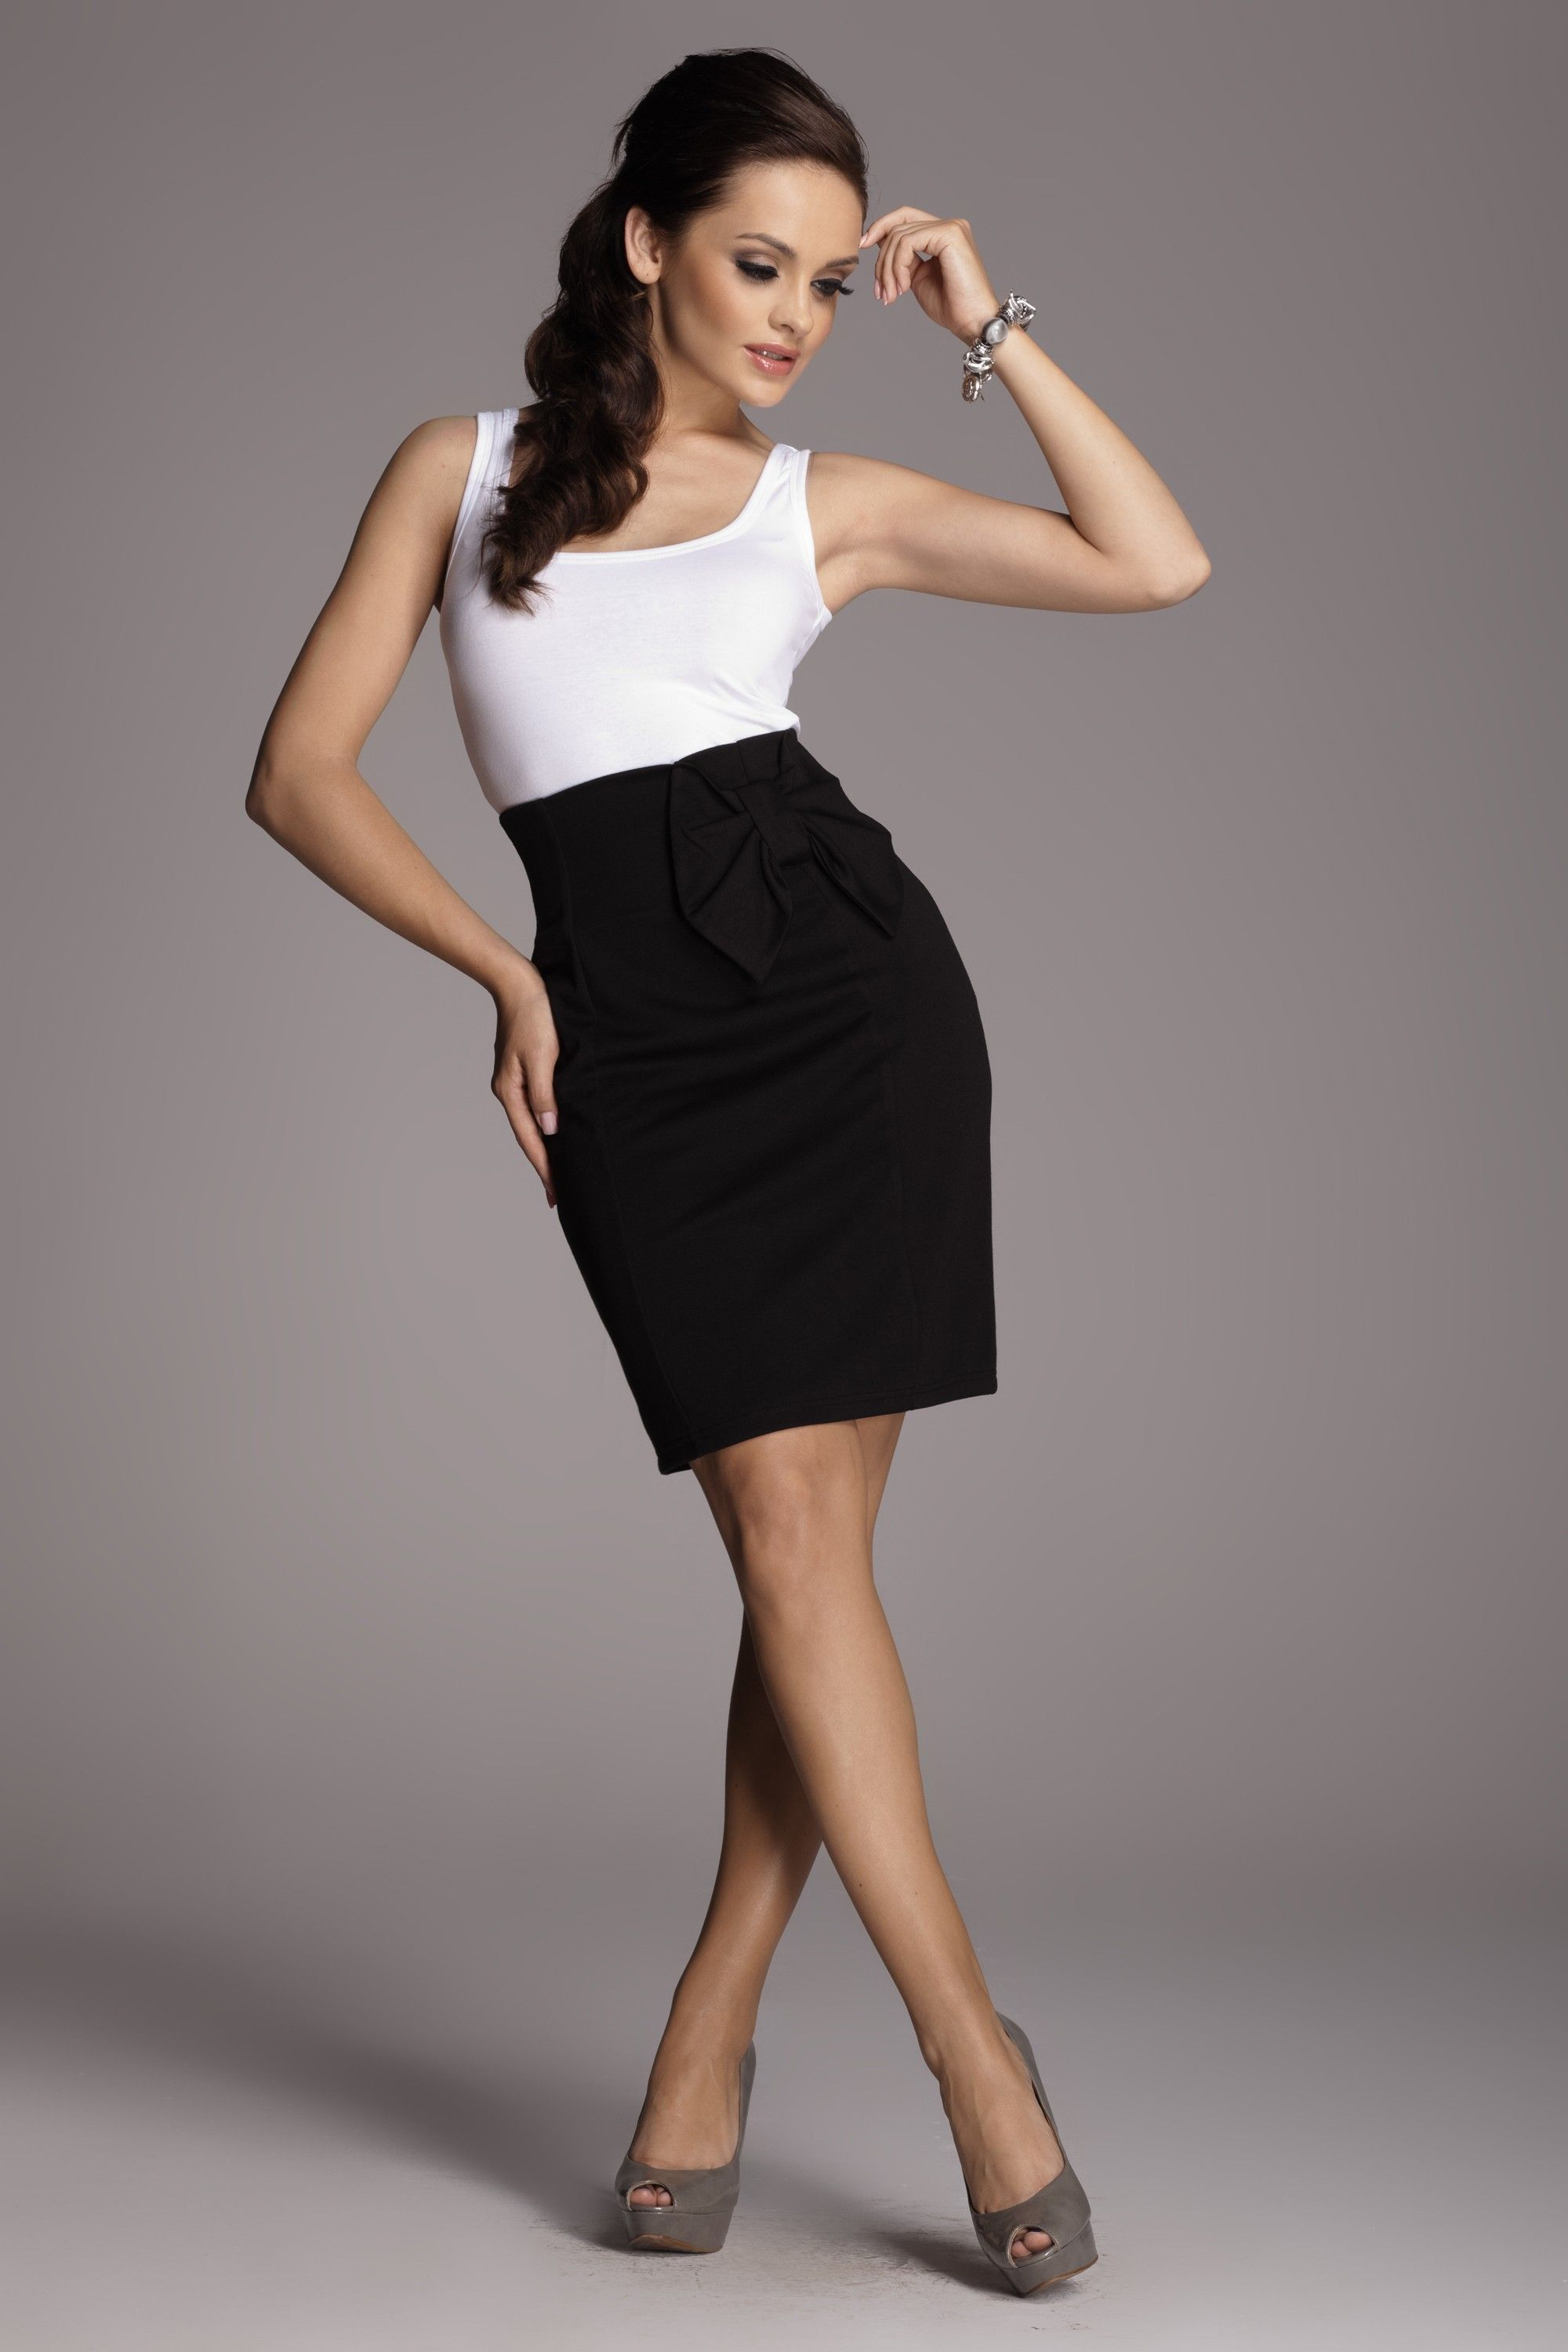 058ae8ecdf926 Jupe taille haute avec noeud sur la hanche. High waisted skirt with bow on  the hip.